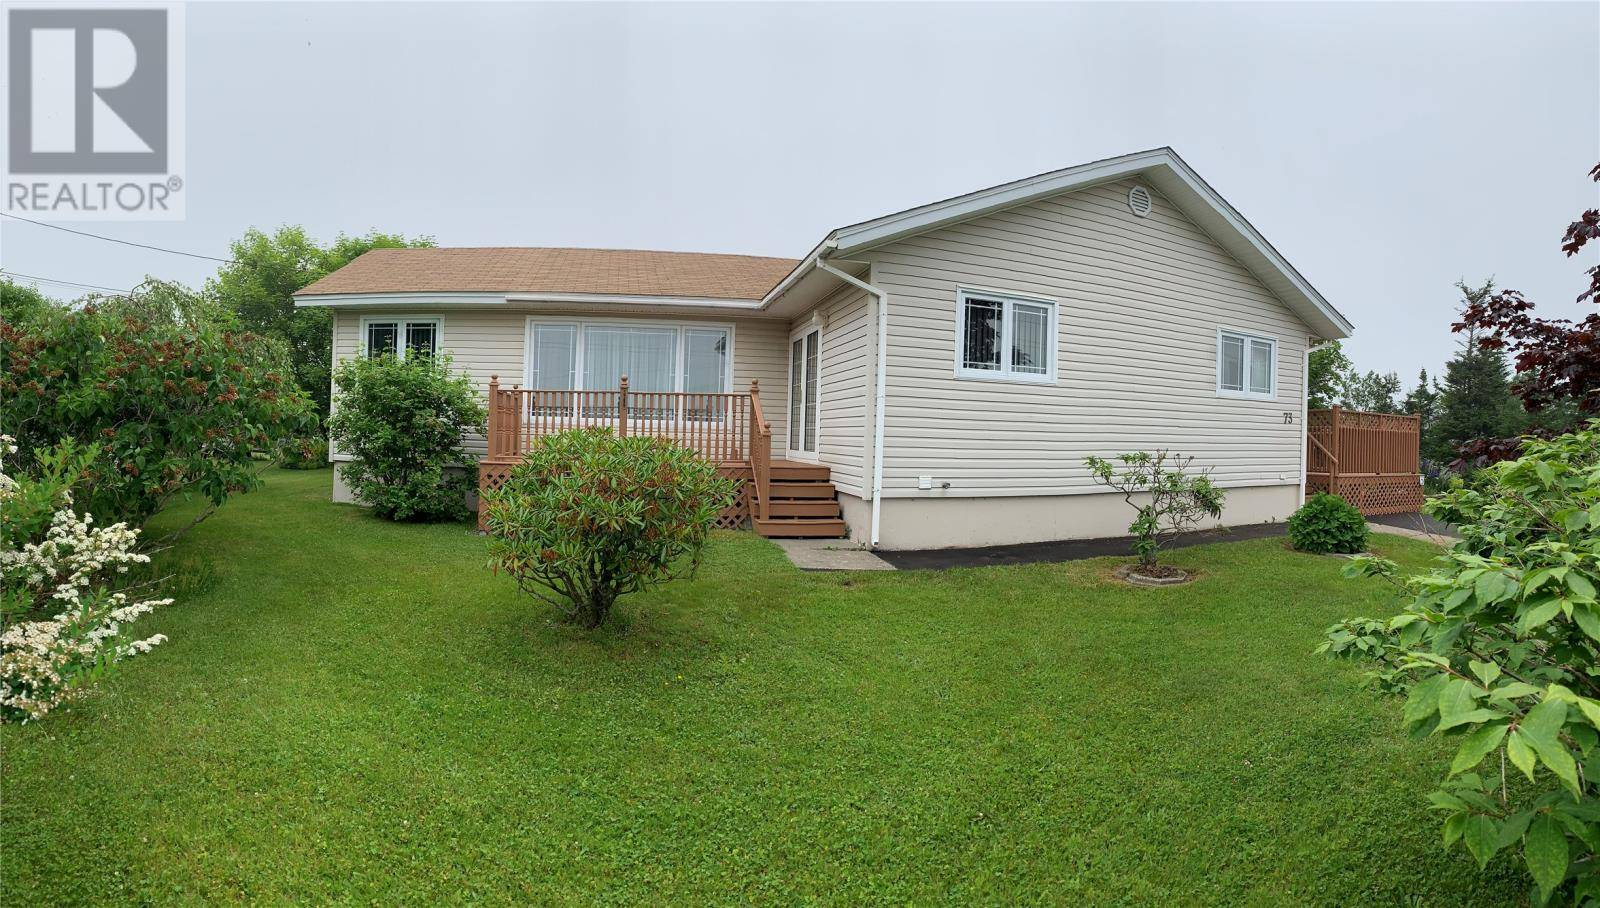 House for sale at 73 Hansen Hy Unit 79 Stephenville Newfoundland - MLS: 1200165